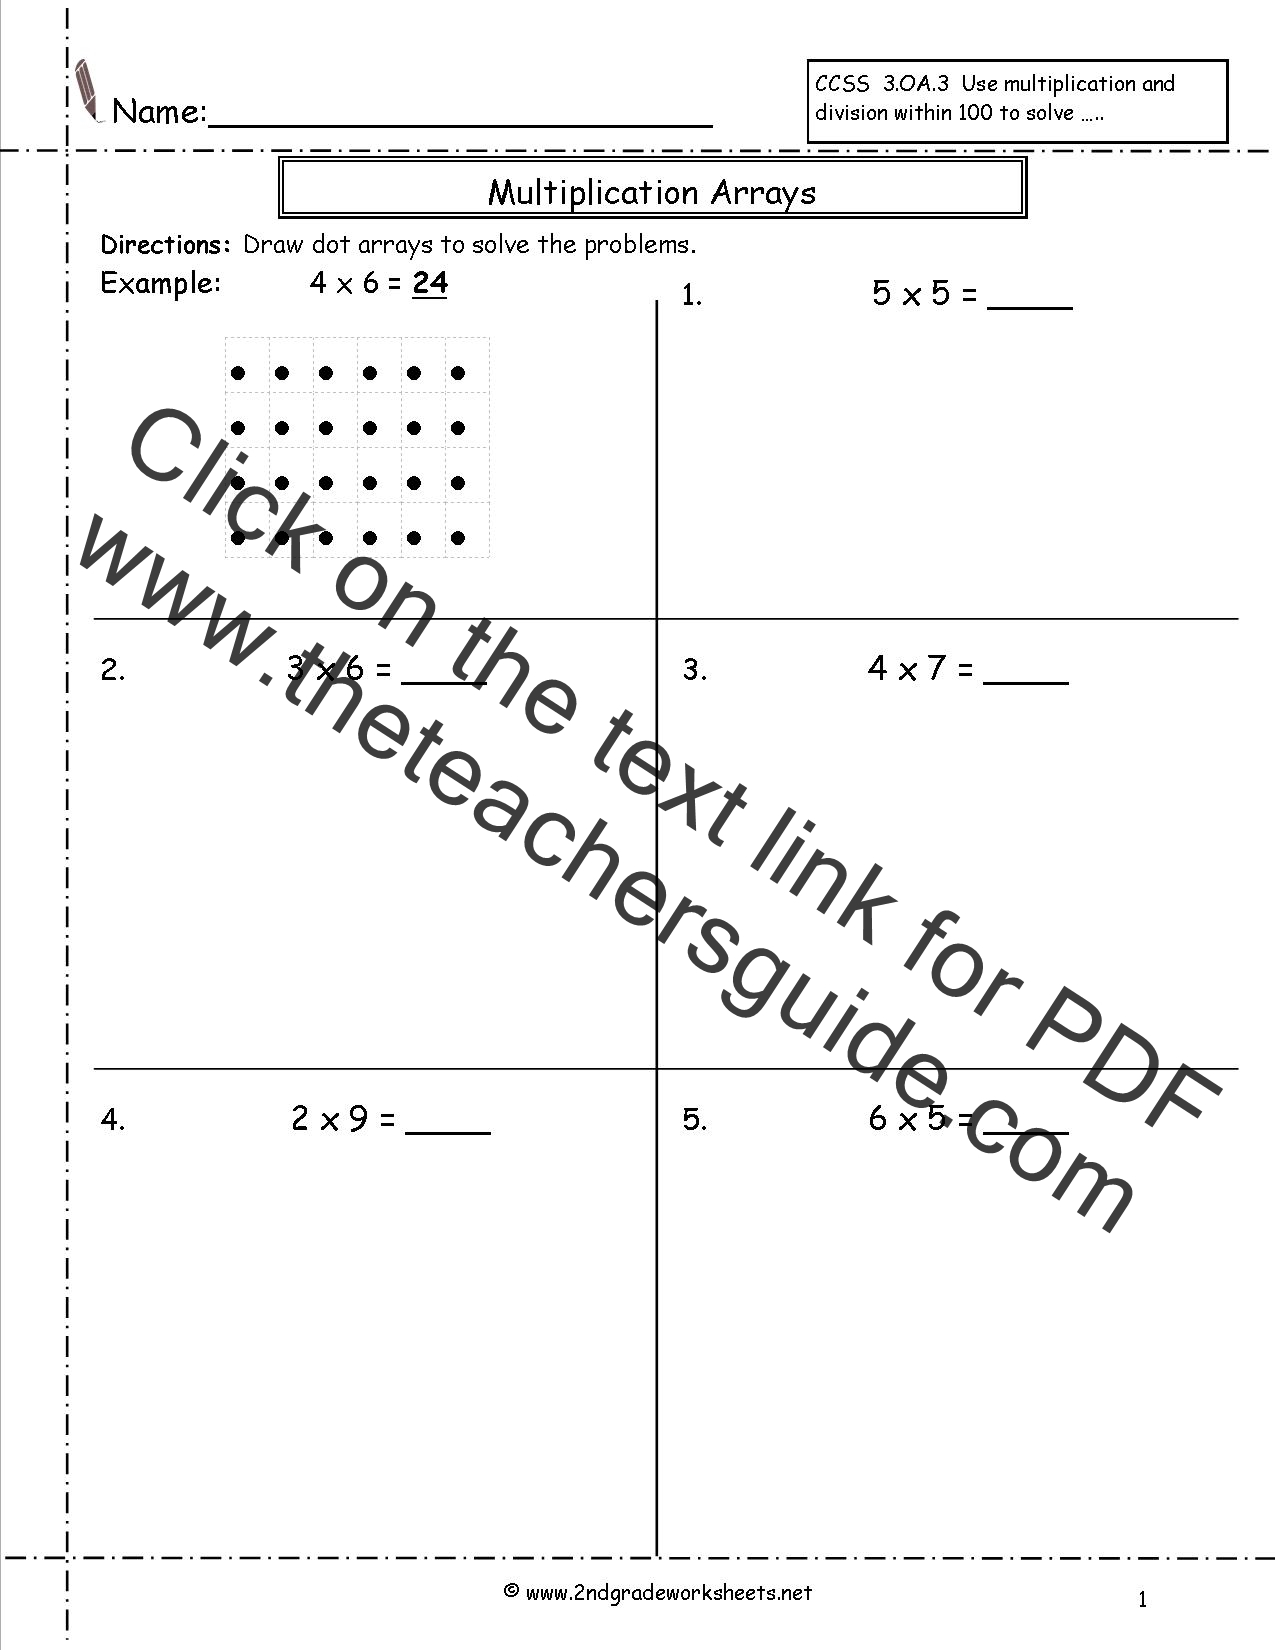 Early Multiplication Printouts - EnchantedLearning.com